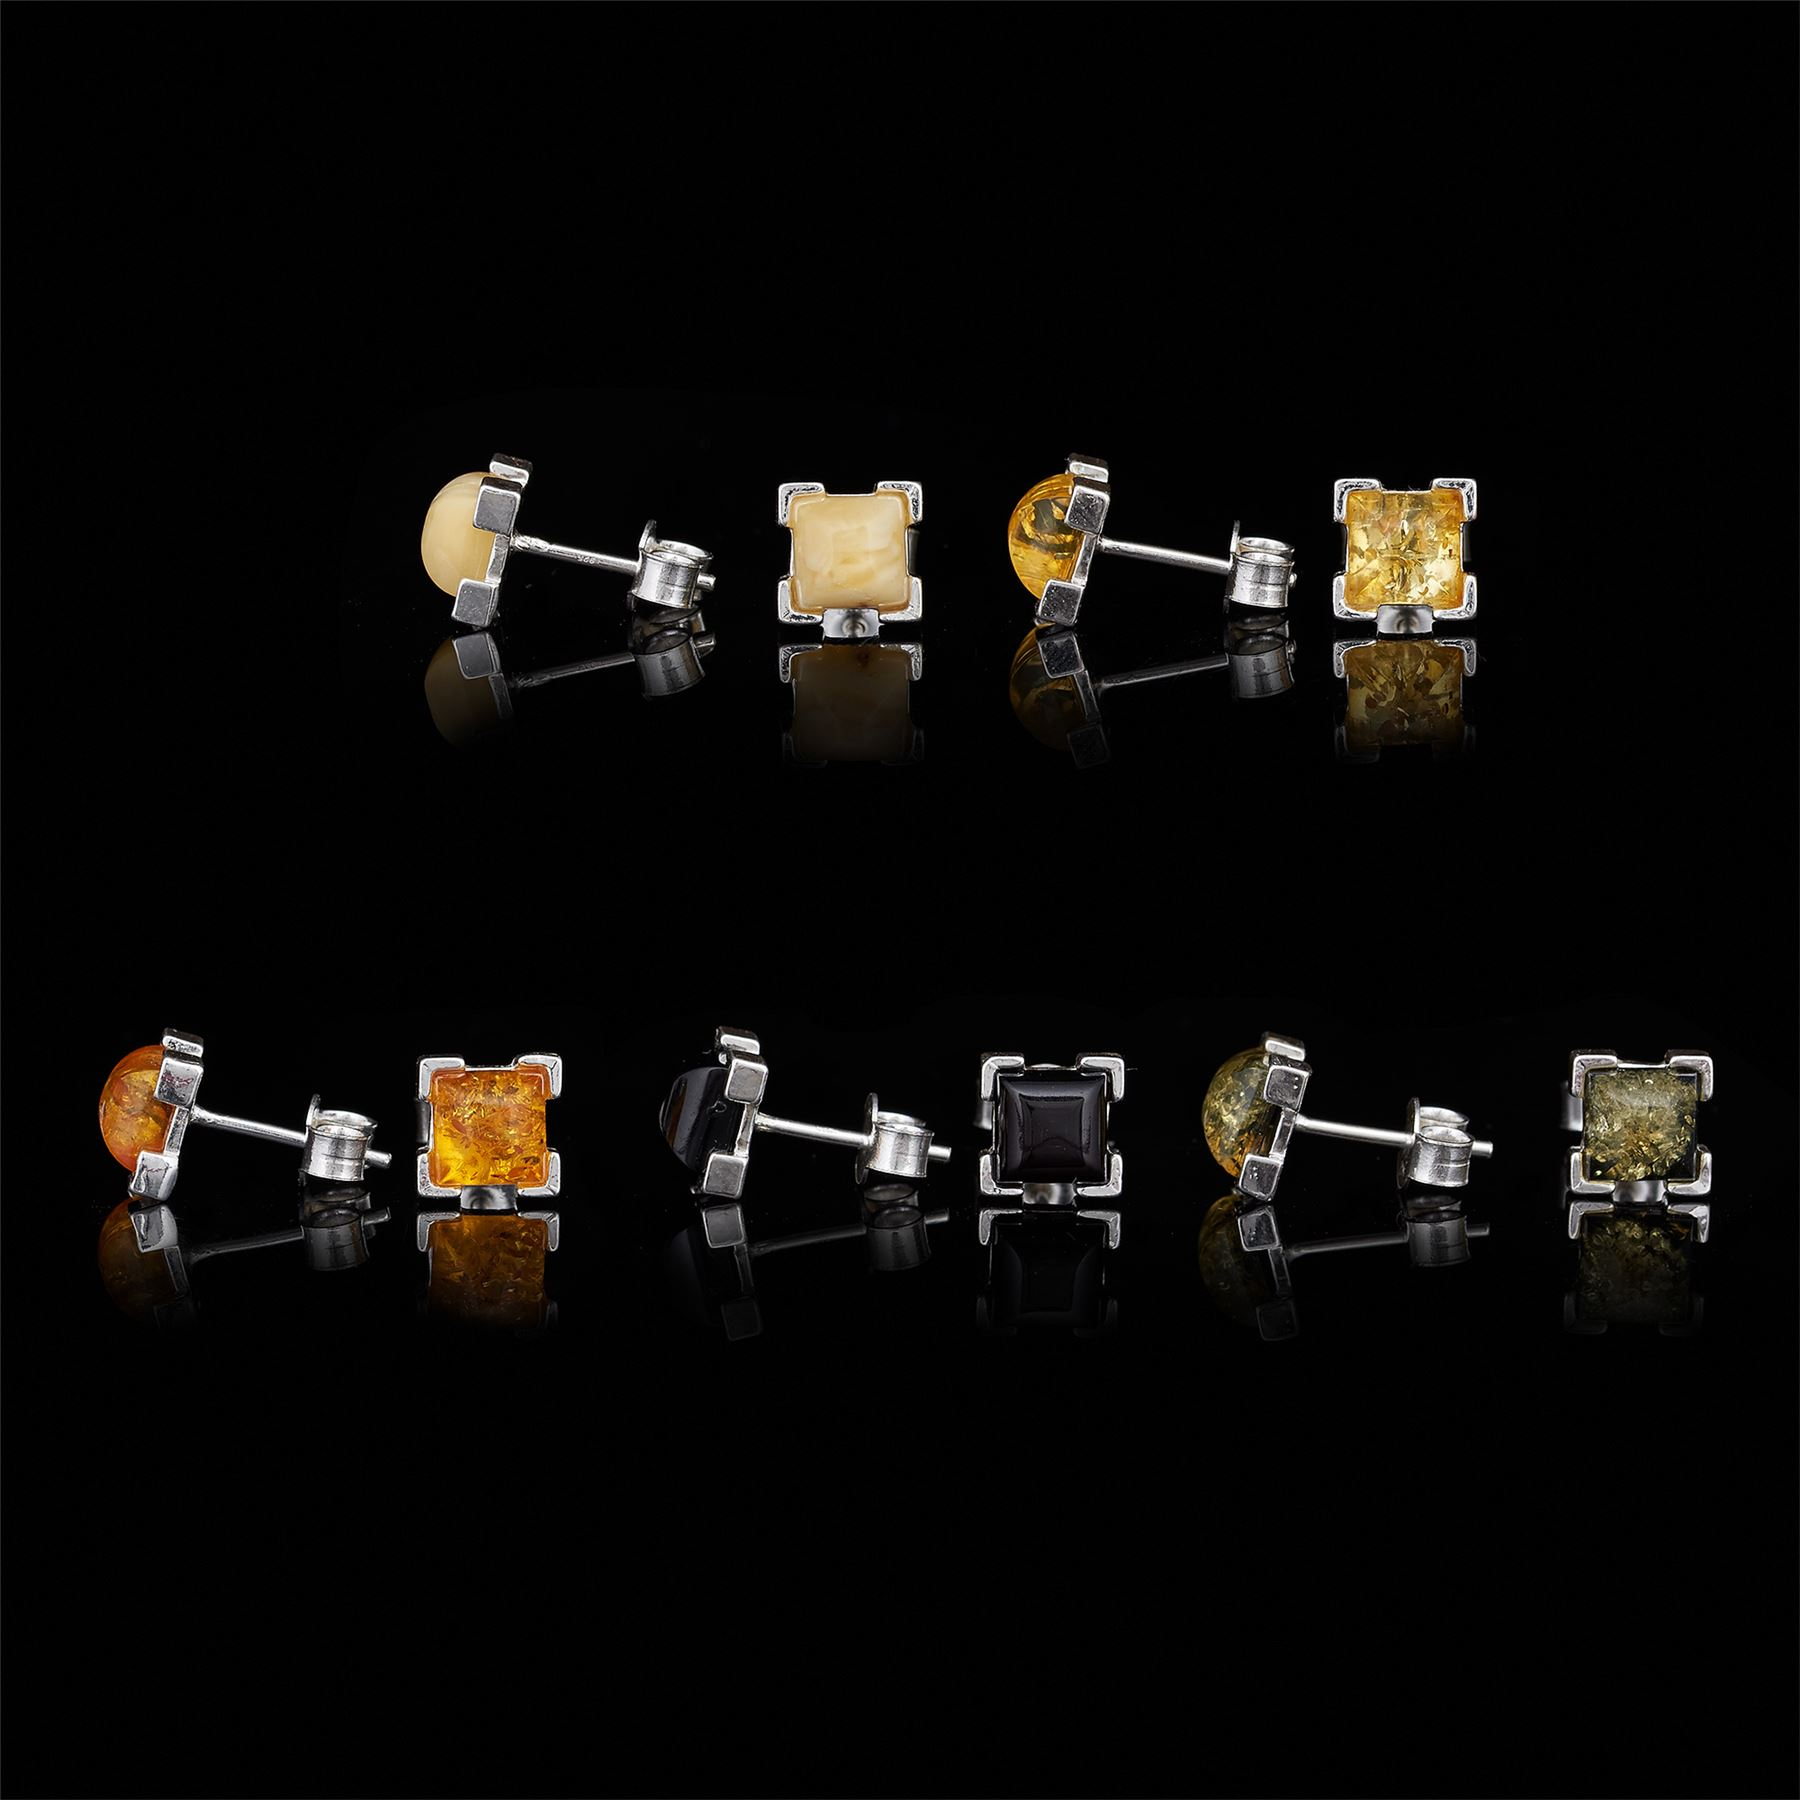 Amberta-Genuine-925-Sterling-Silver-Earrings-with-Natural-Baltic-Amber-Gemstone thumbnail 71